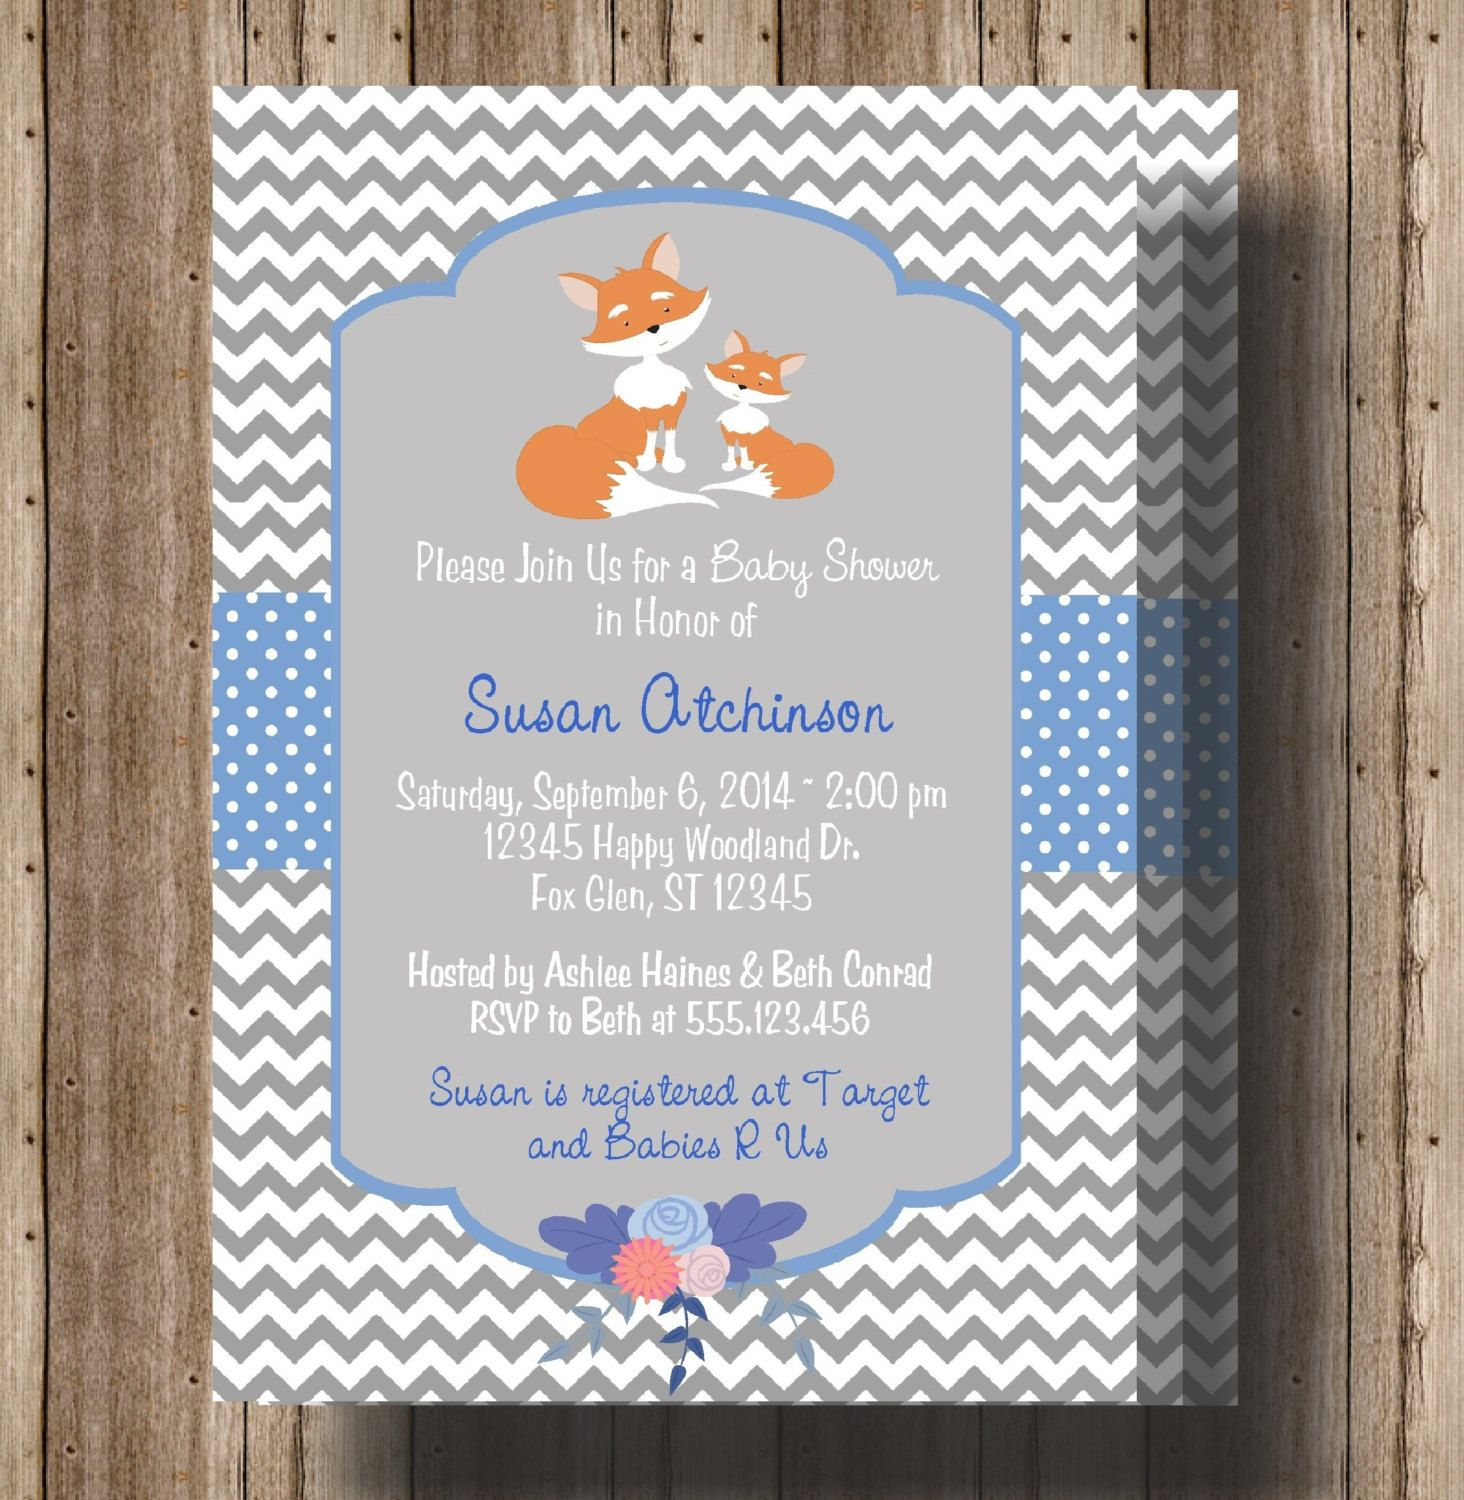 baby shower invitation wording for bringing diapers%0A baby shower invitations fox theme   FOX BABY SHOWER Invitation for  Boys Woodland by traditionsbydonna